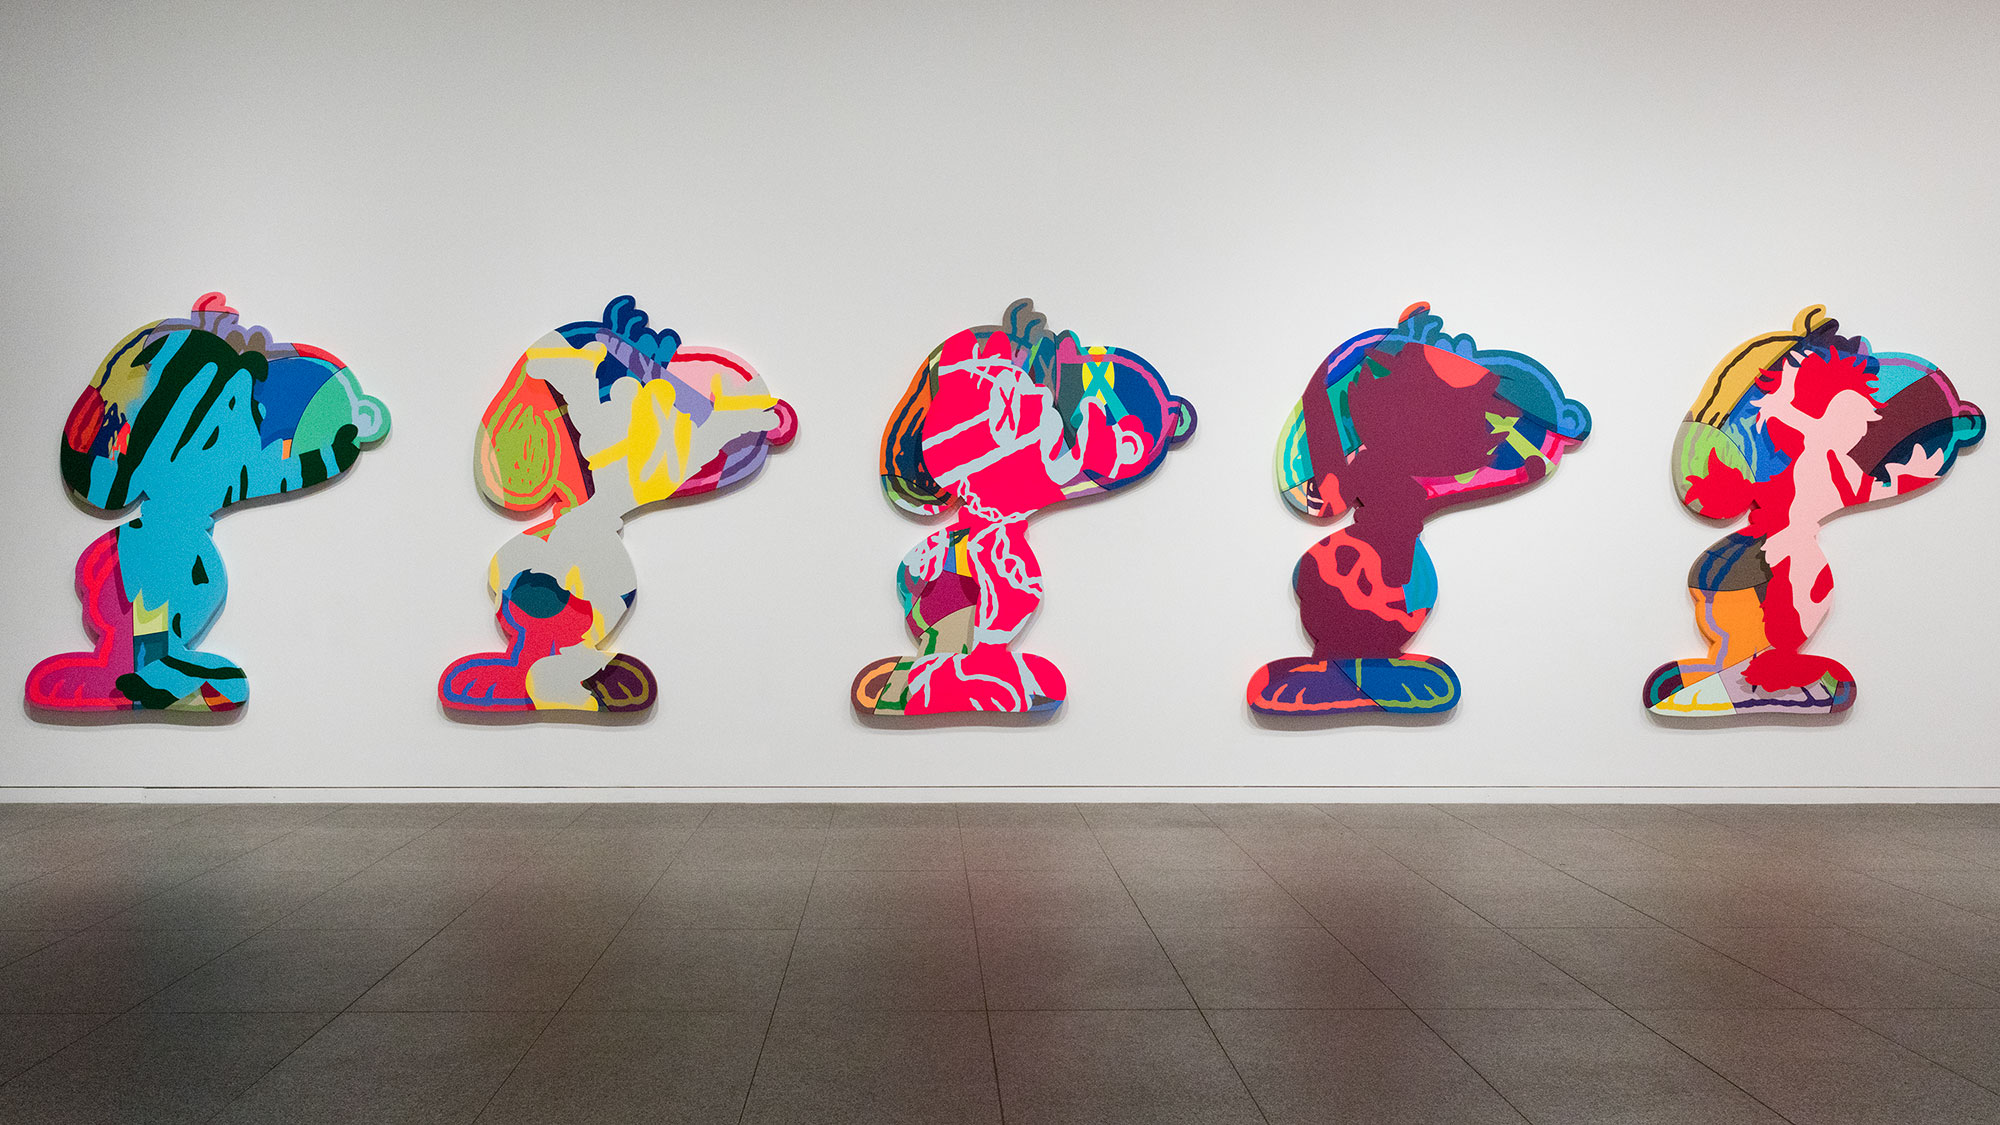 Modern Art Museum Of Fort Worth - Business invoice templates free kaws online store